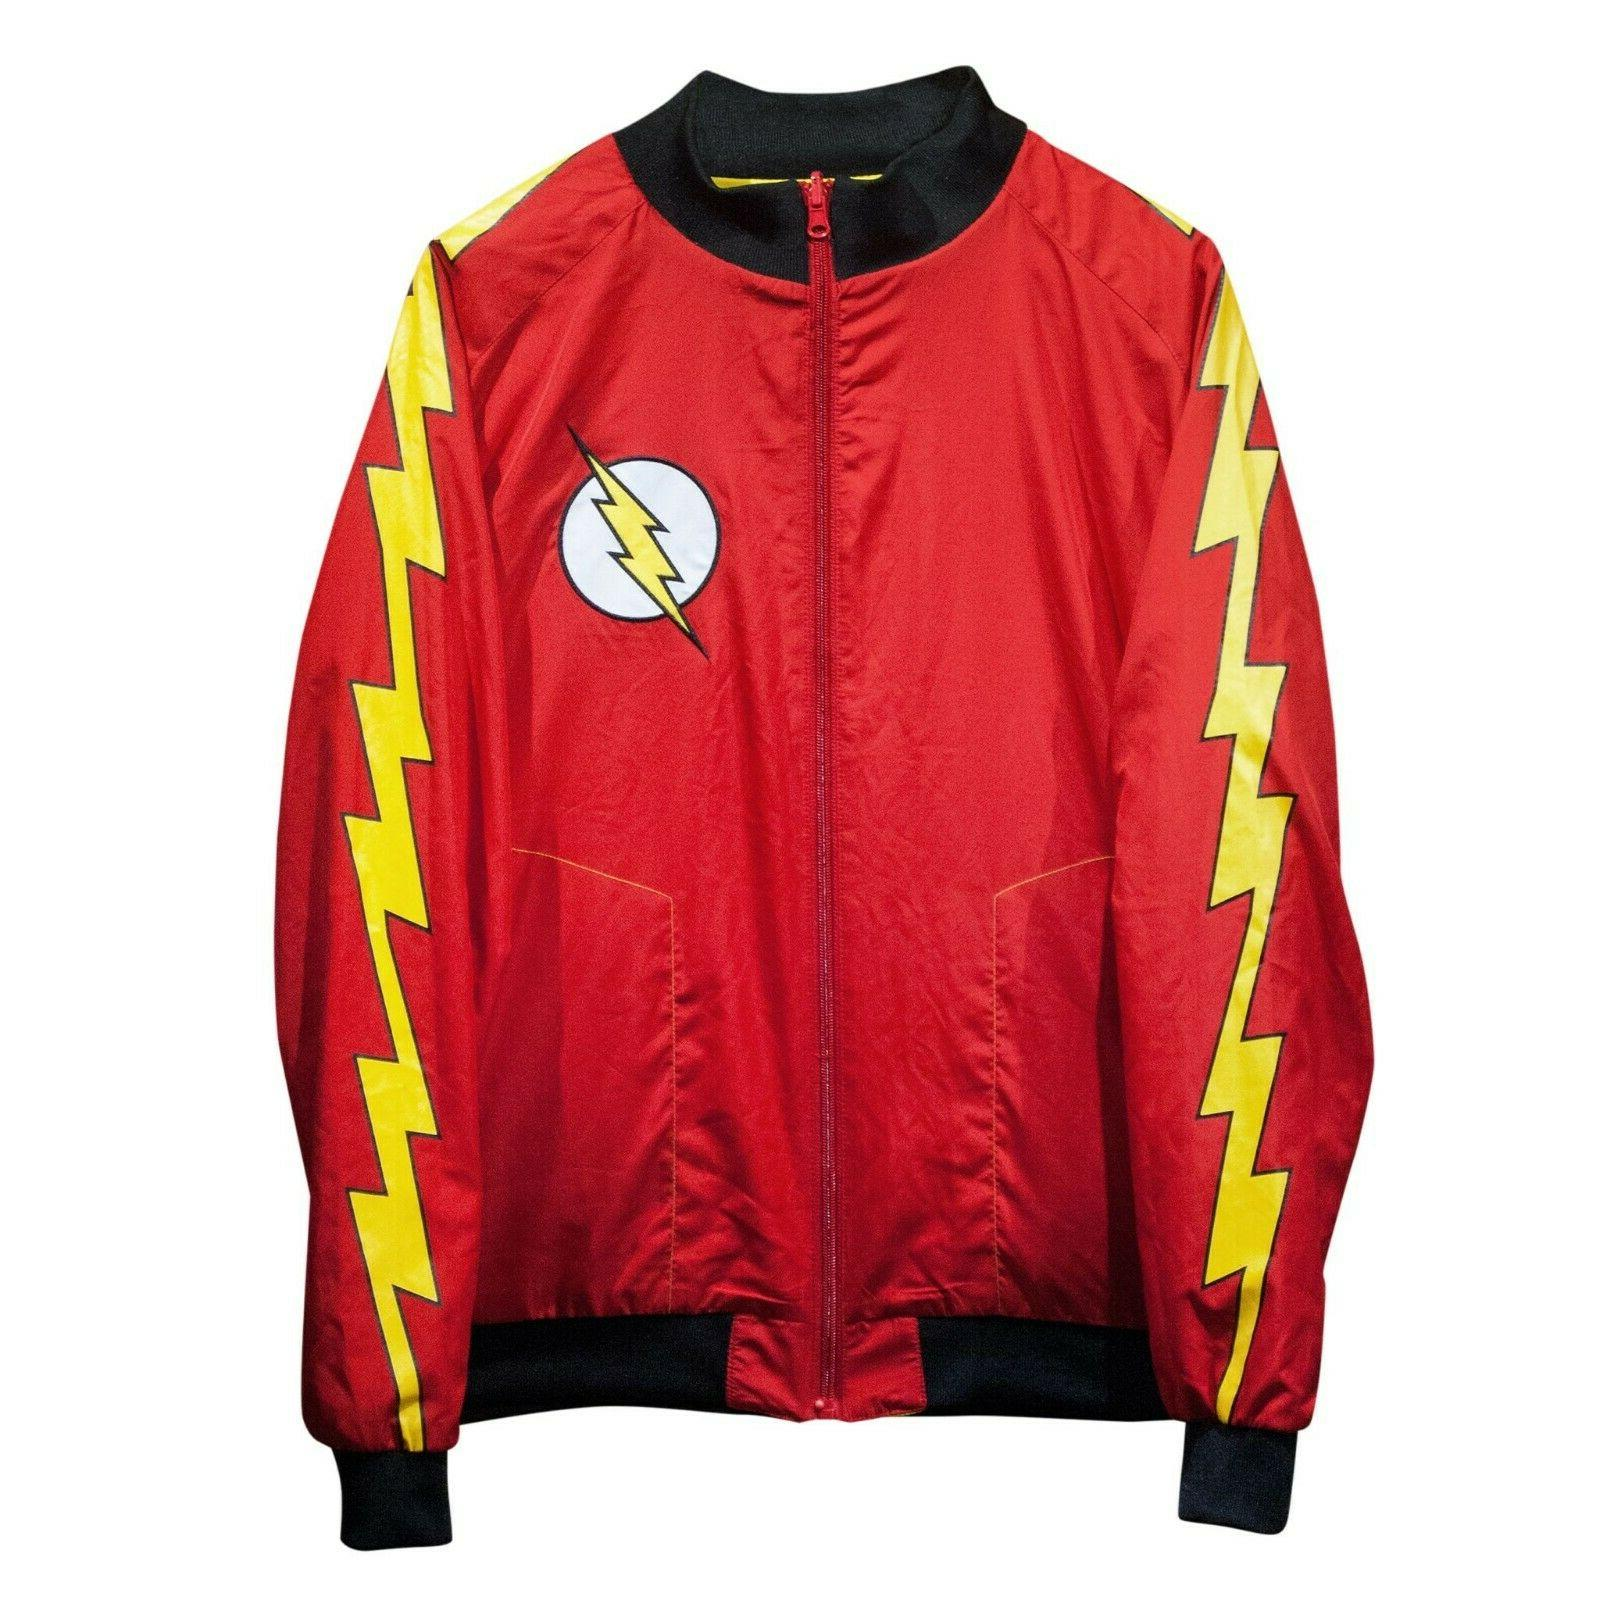 the flash perfect fit reversible track jacket